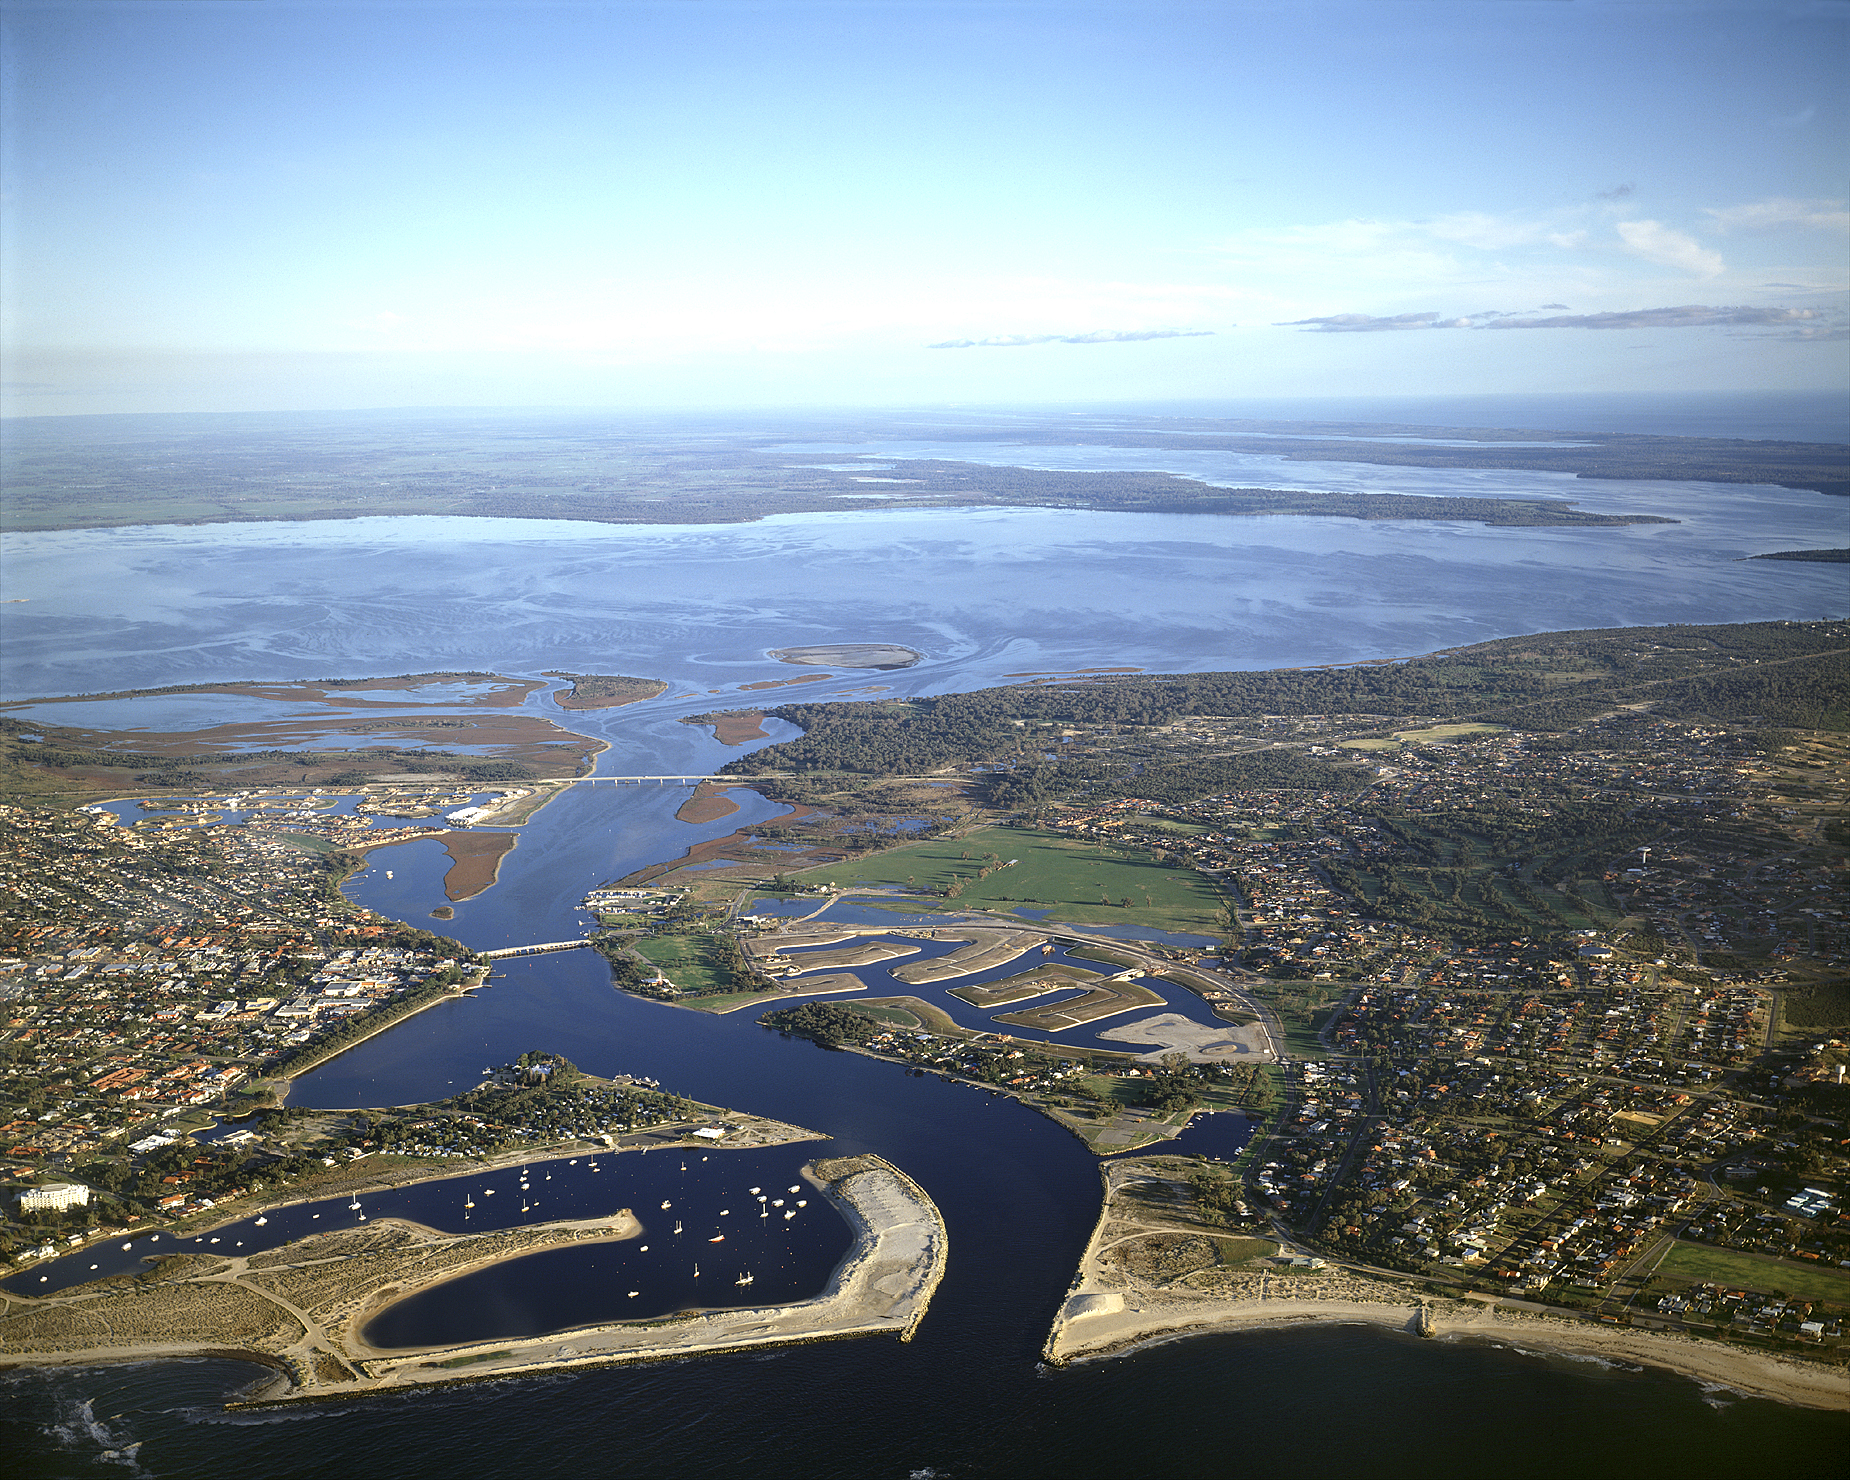 Overhead shot of Mandurah estuary - water way stretching through housing developments